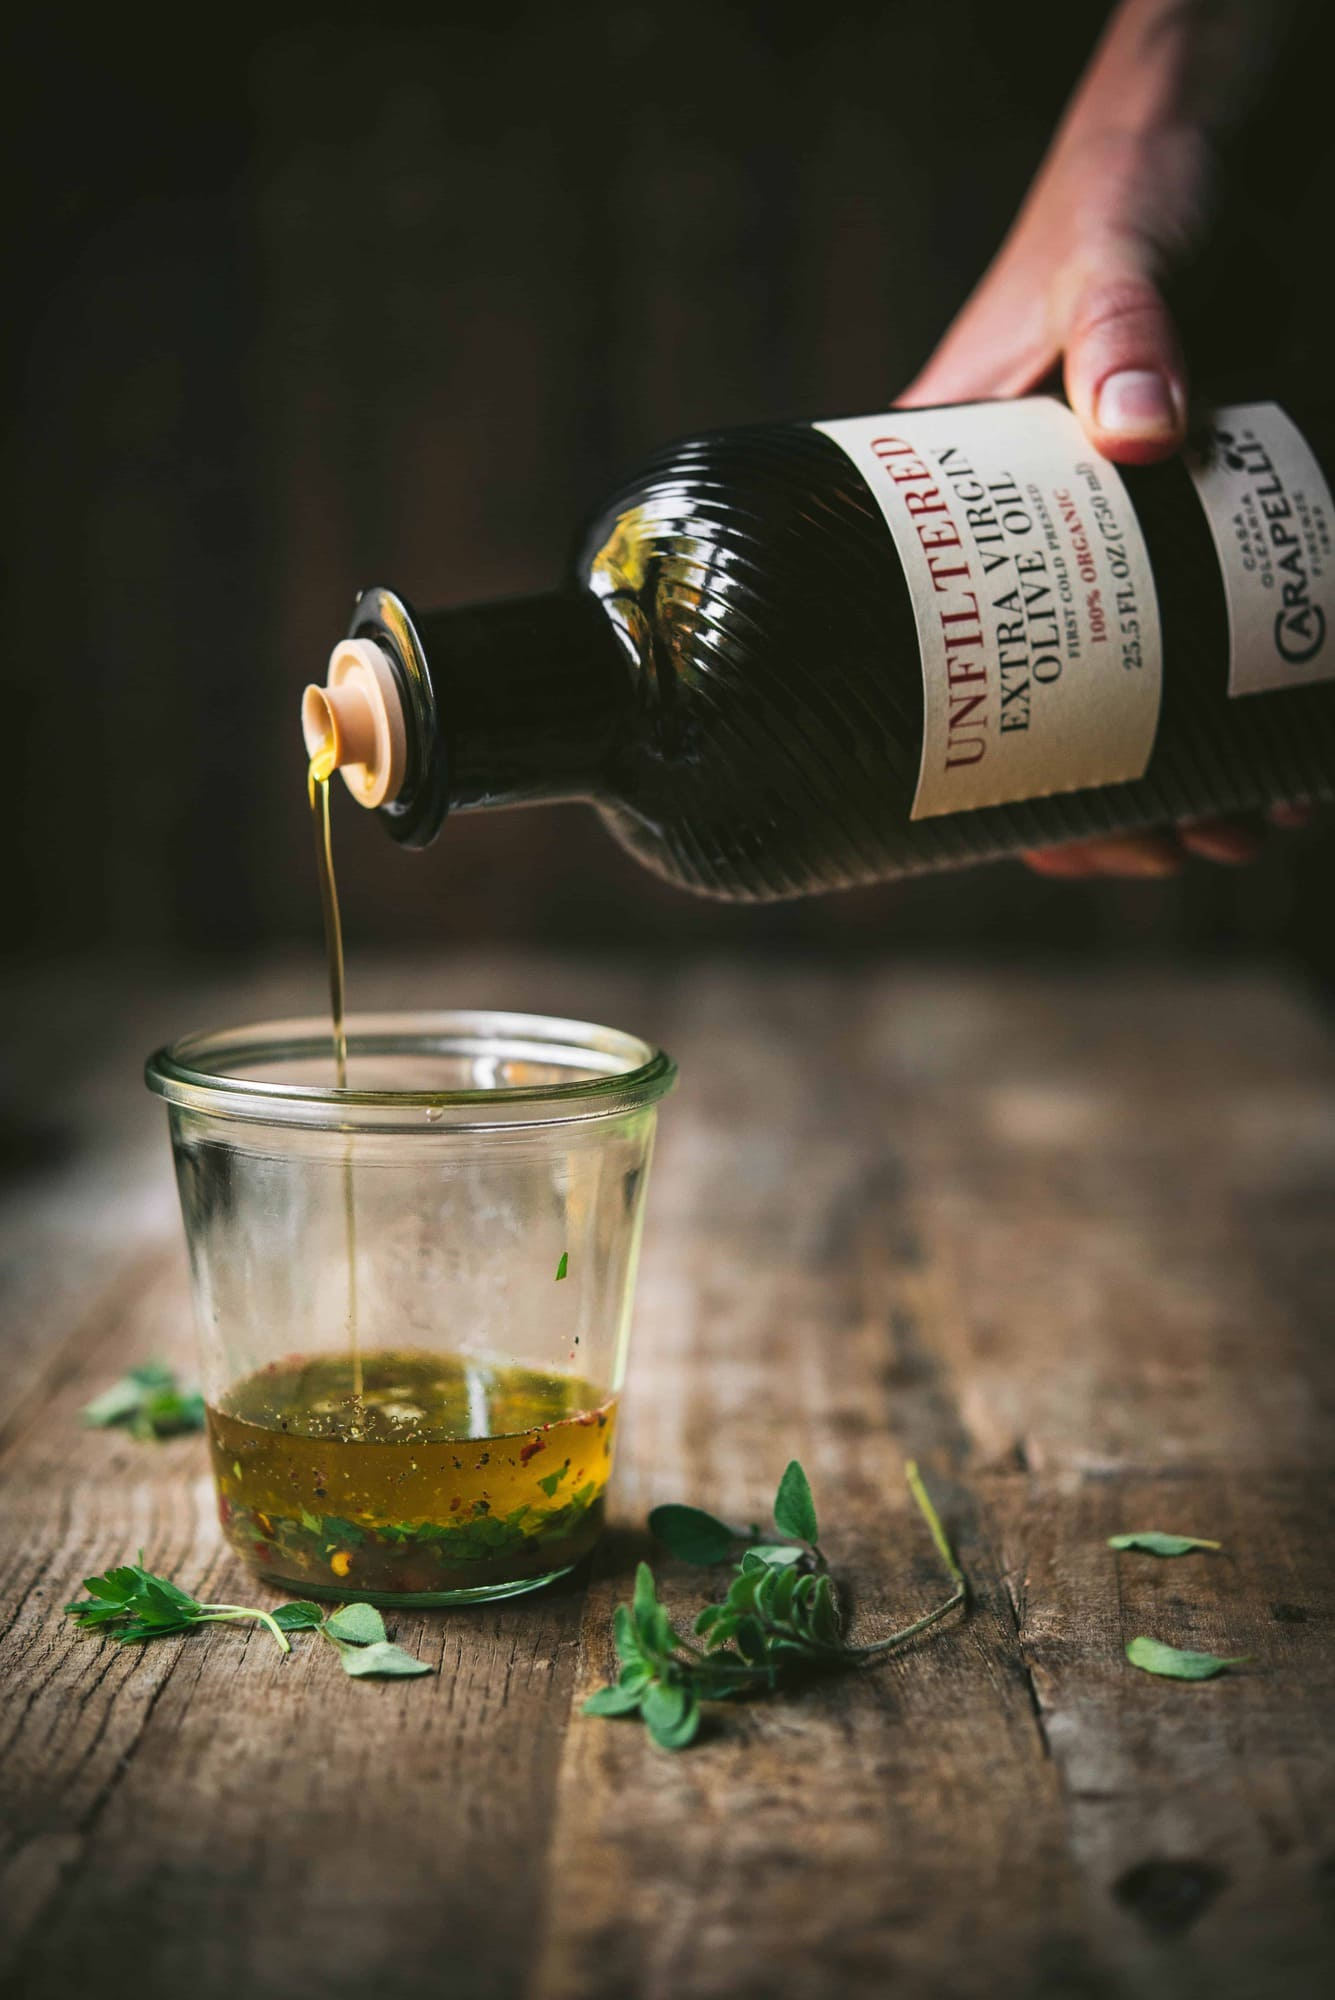 Pouring Carapelli olive oil into glass jar filled with herbs